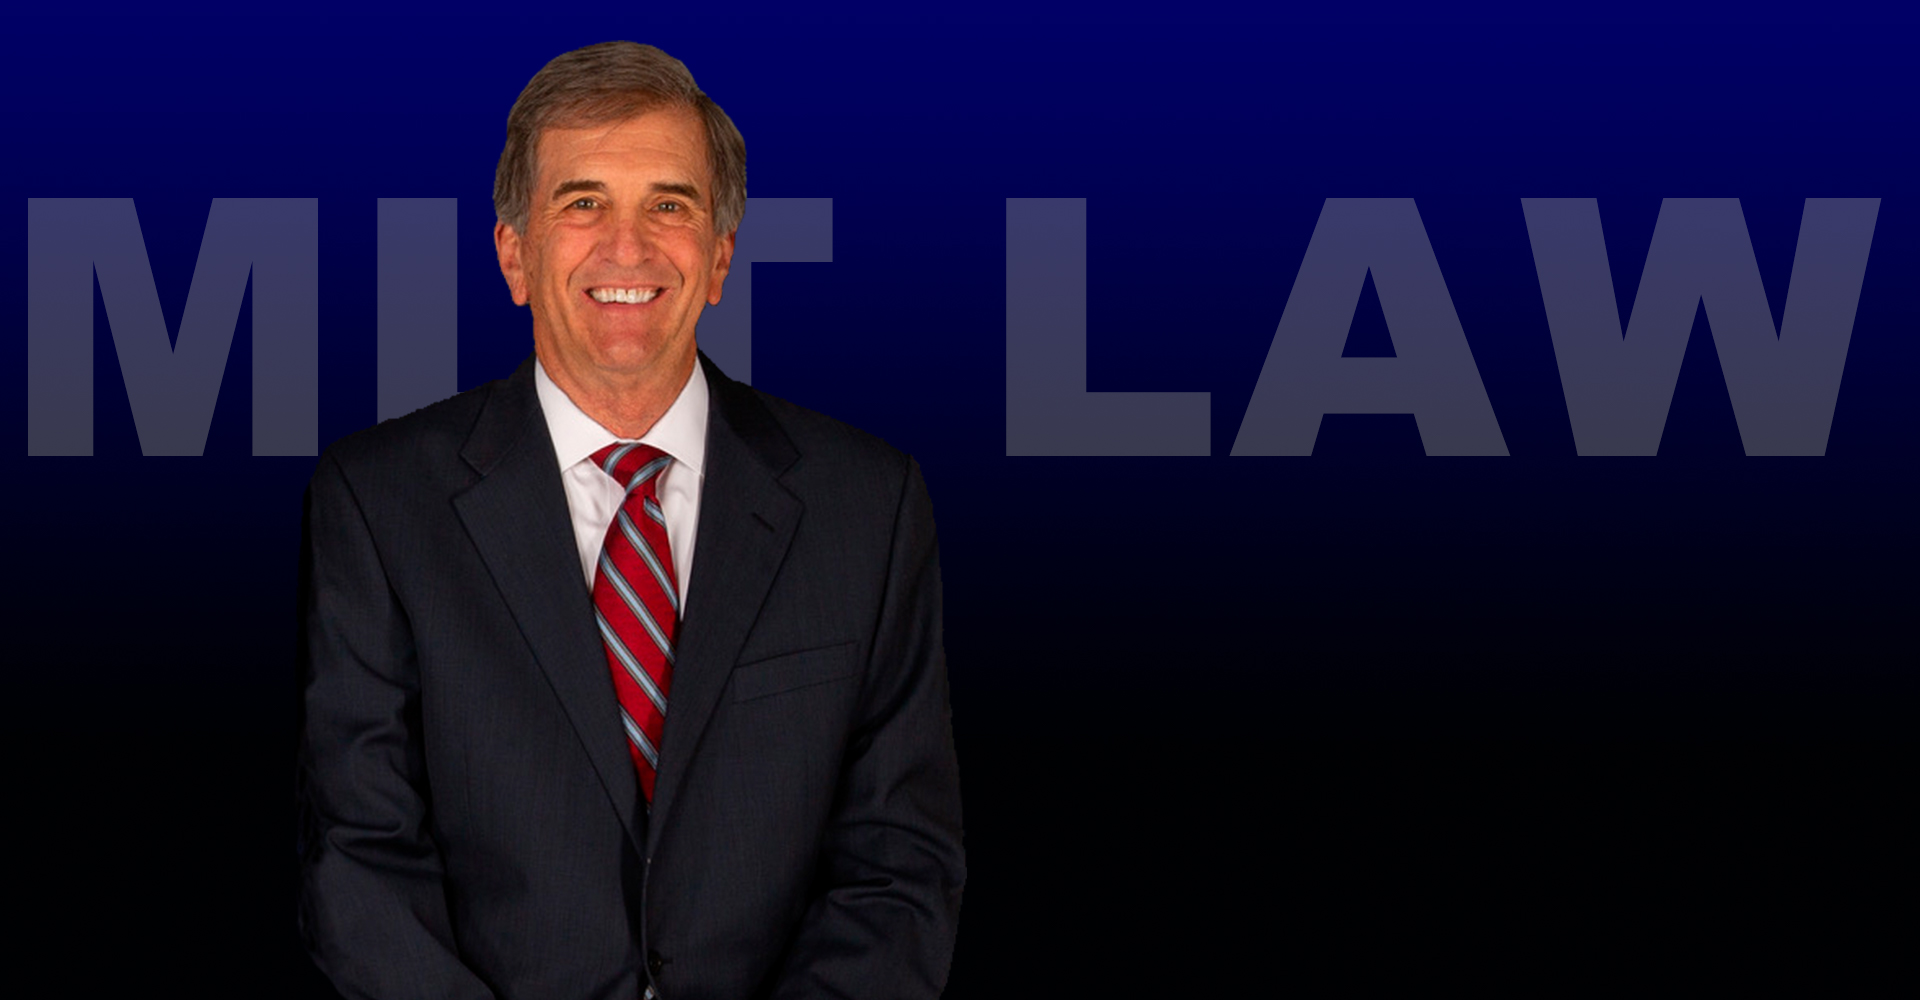 Attorney Farrell Levy of McDonald, Levy & Taylor Law Firm